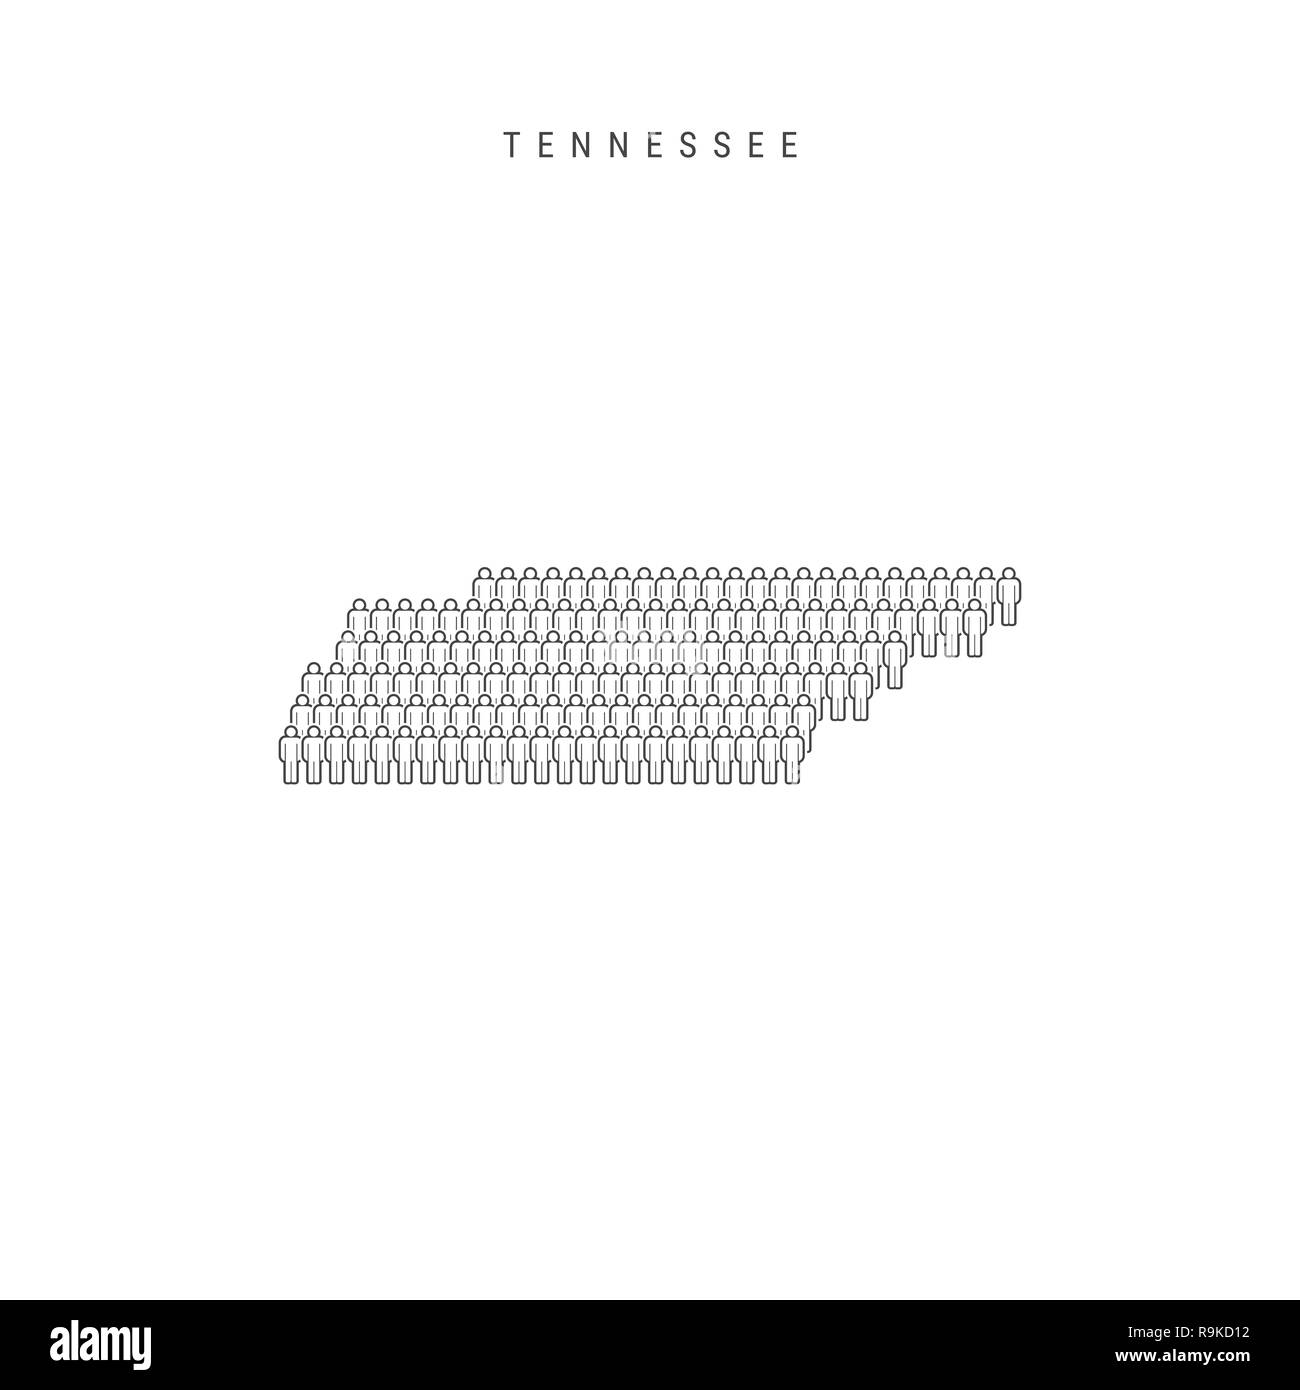 Tennessee State Map Stockfotos & Tennessee State Map Bilder - Alamy